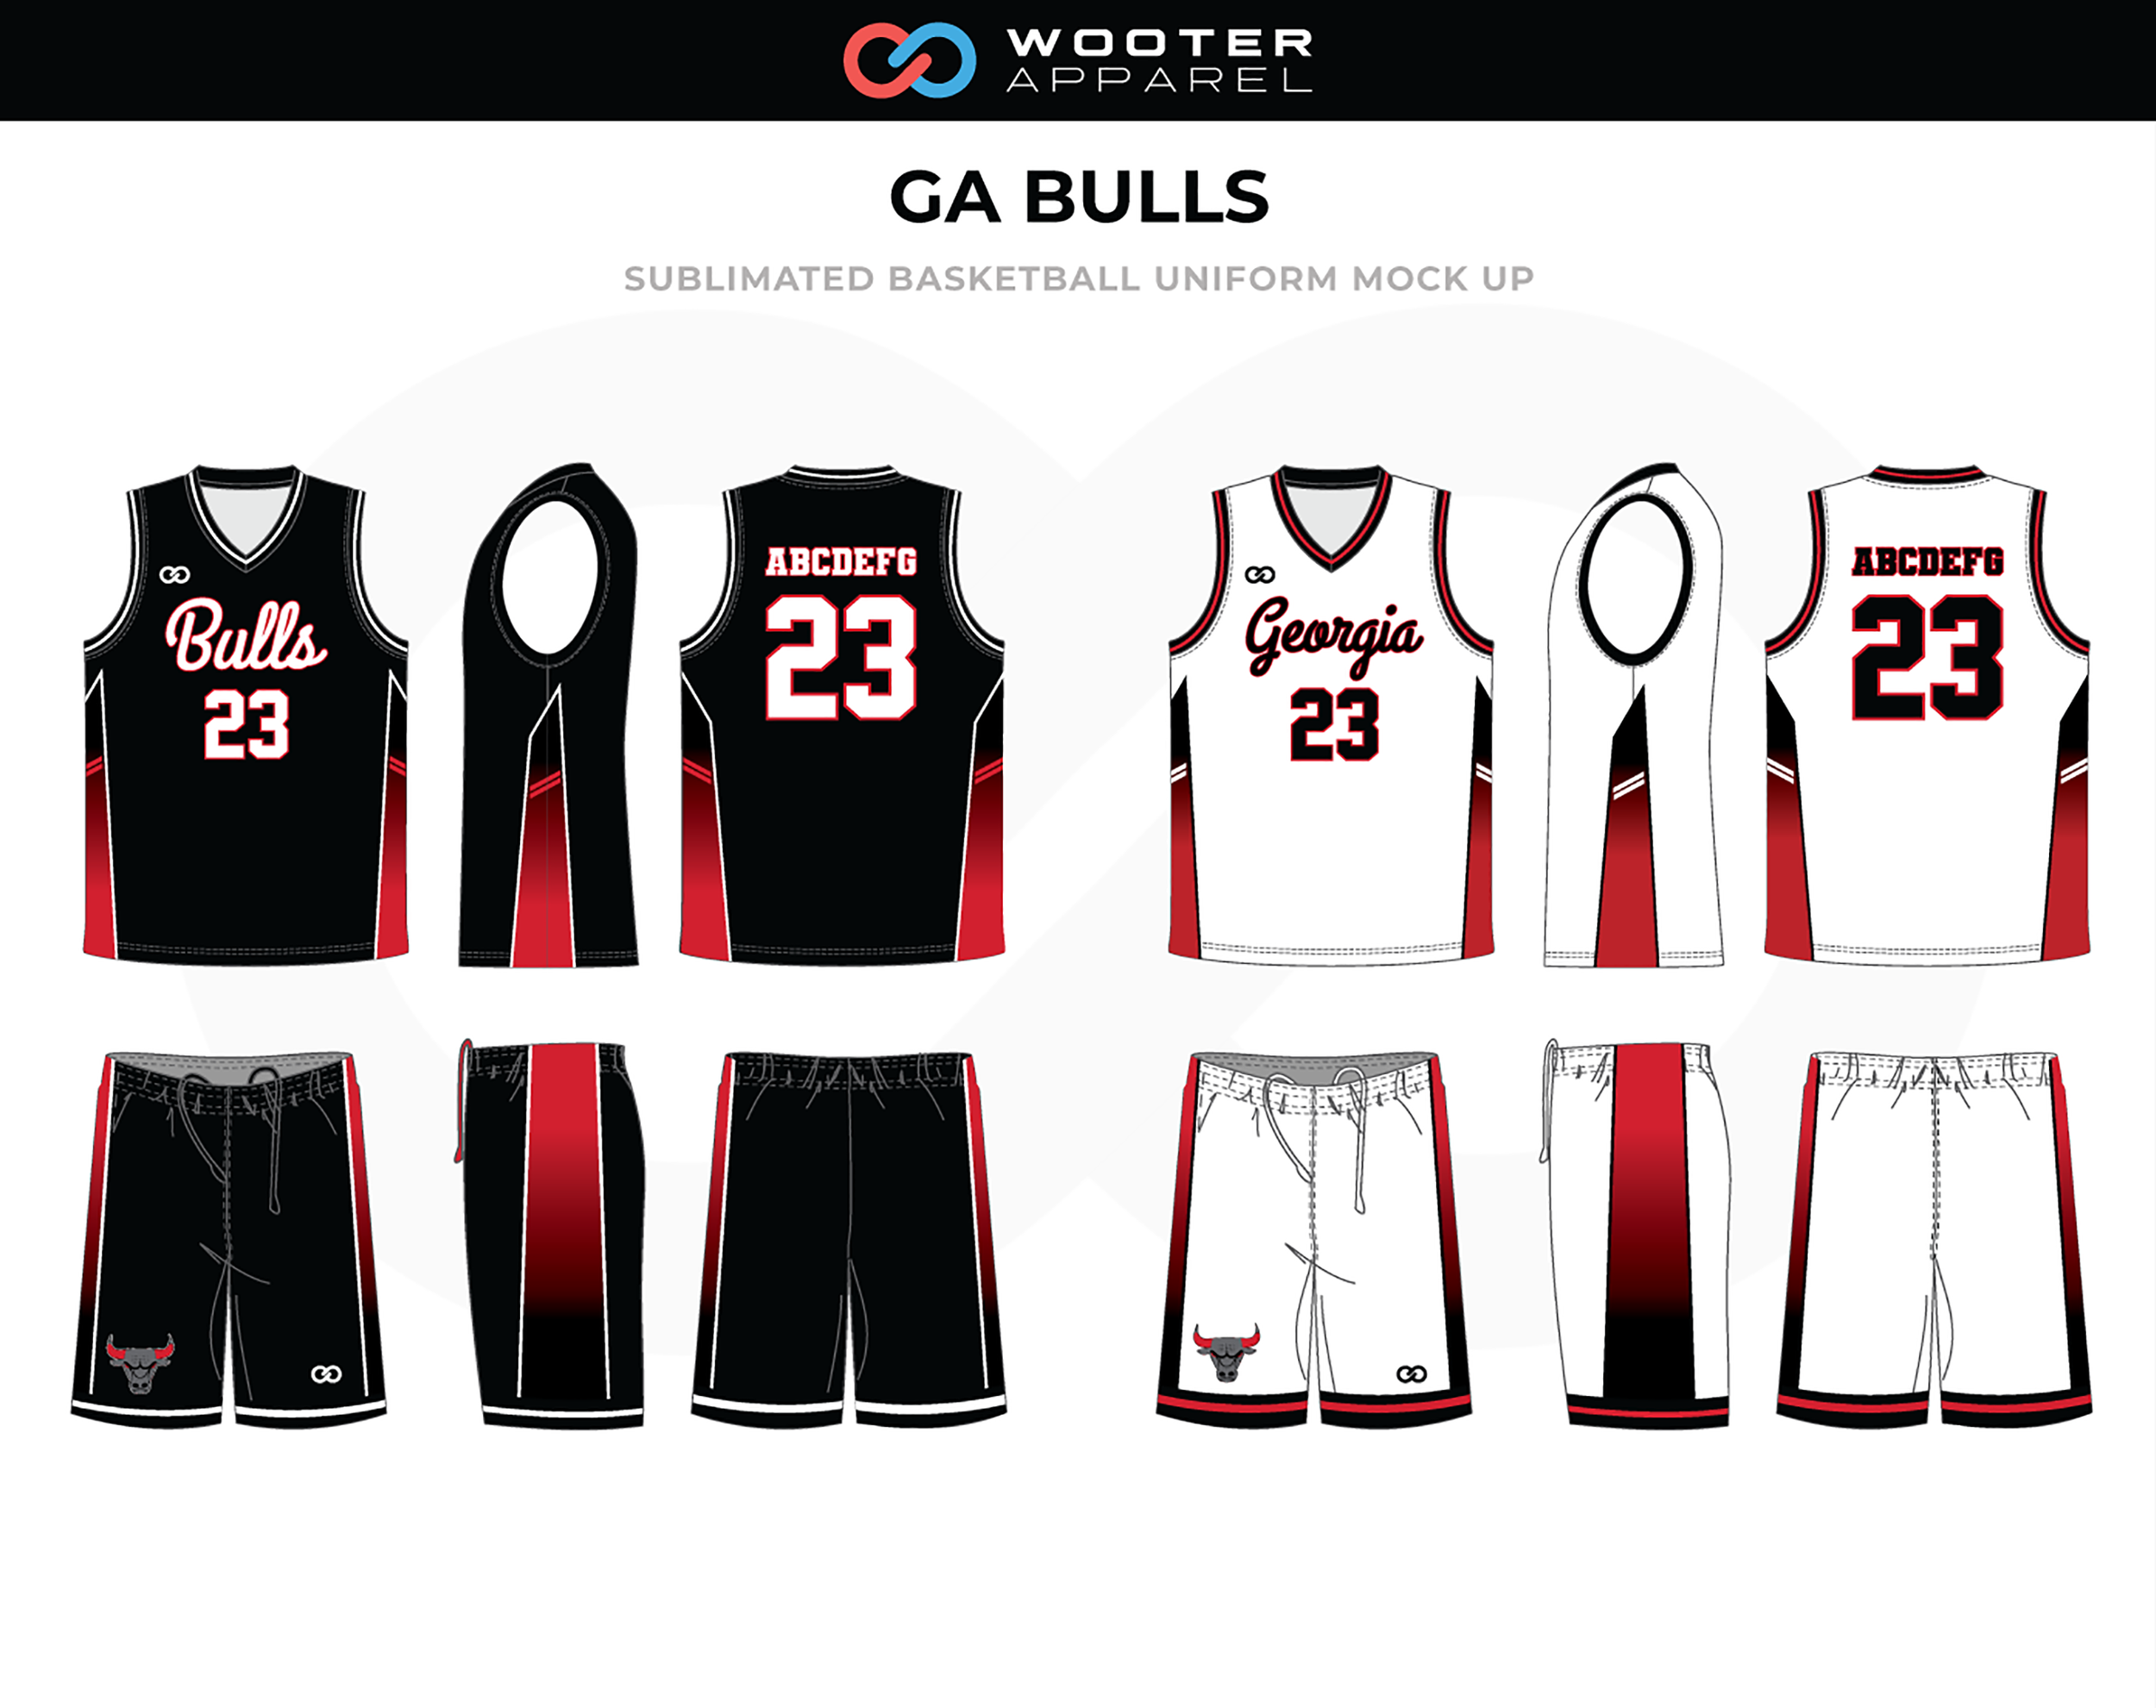 GA BULLS Red Black White Basketball Uniform, Jersey and Shorts